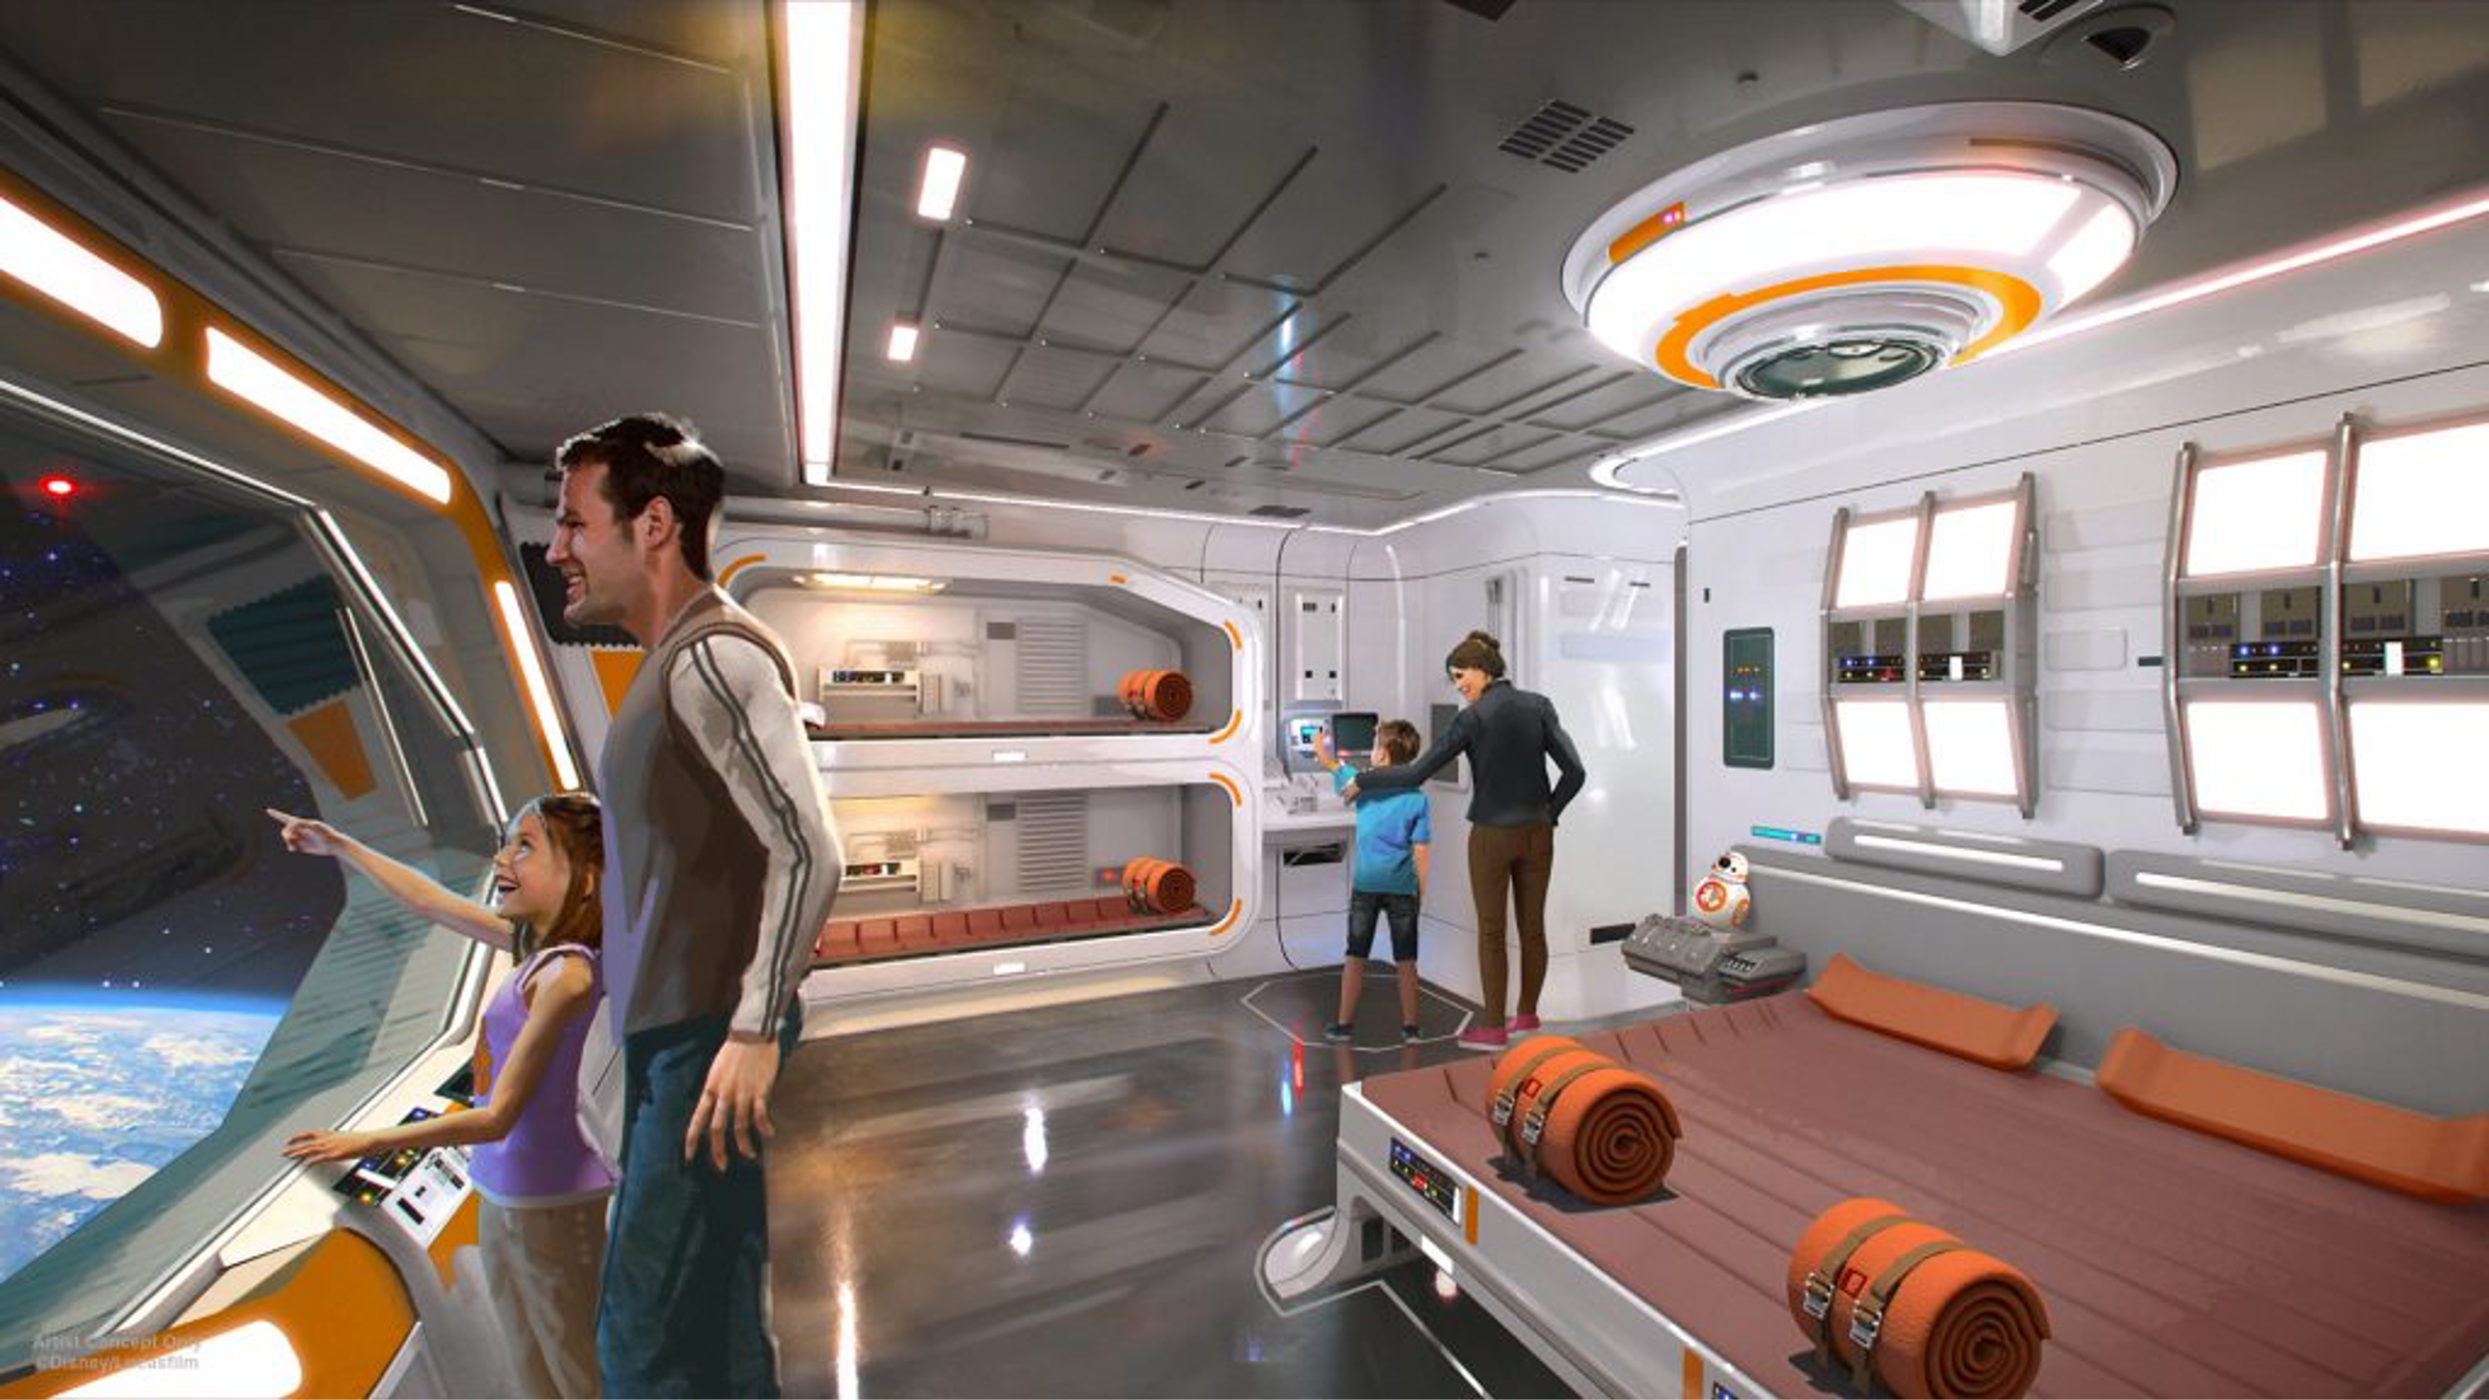 Artist's rendering of a family of three exploring a futuristic suite in Disney's Star Wars themed hotel